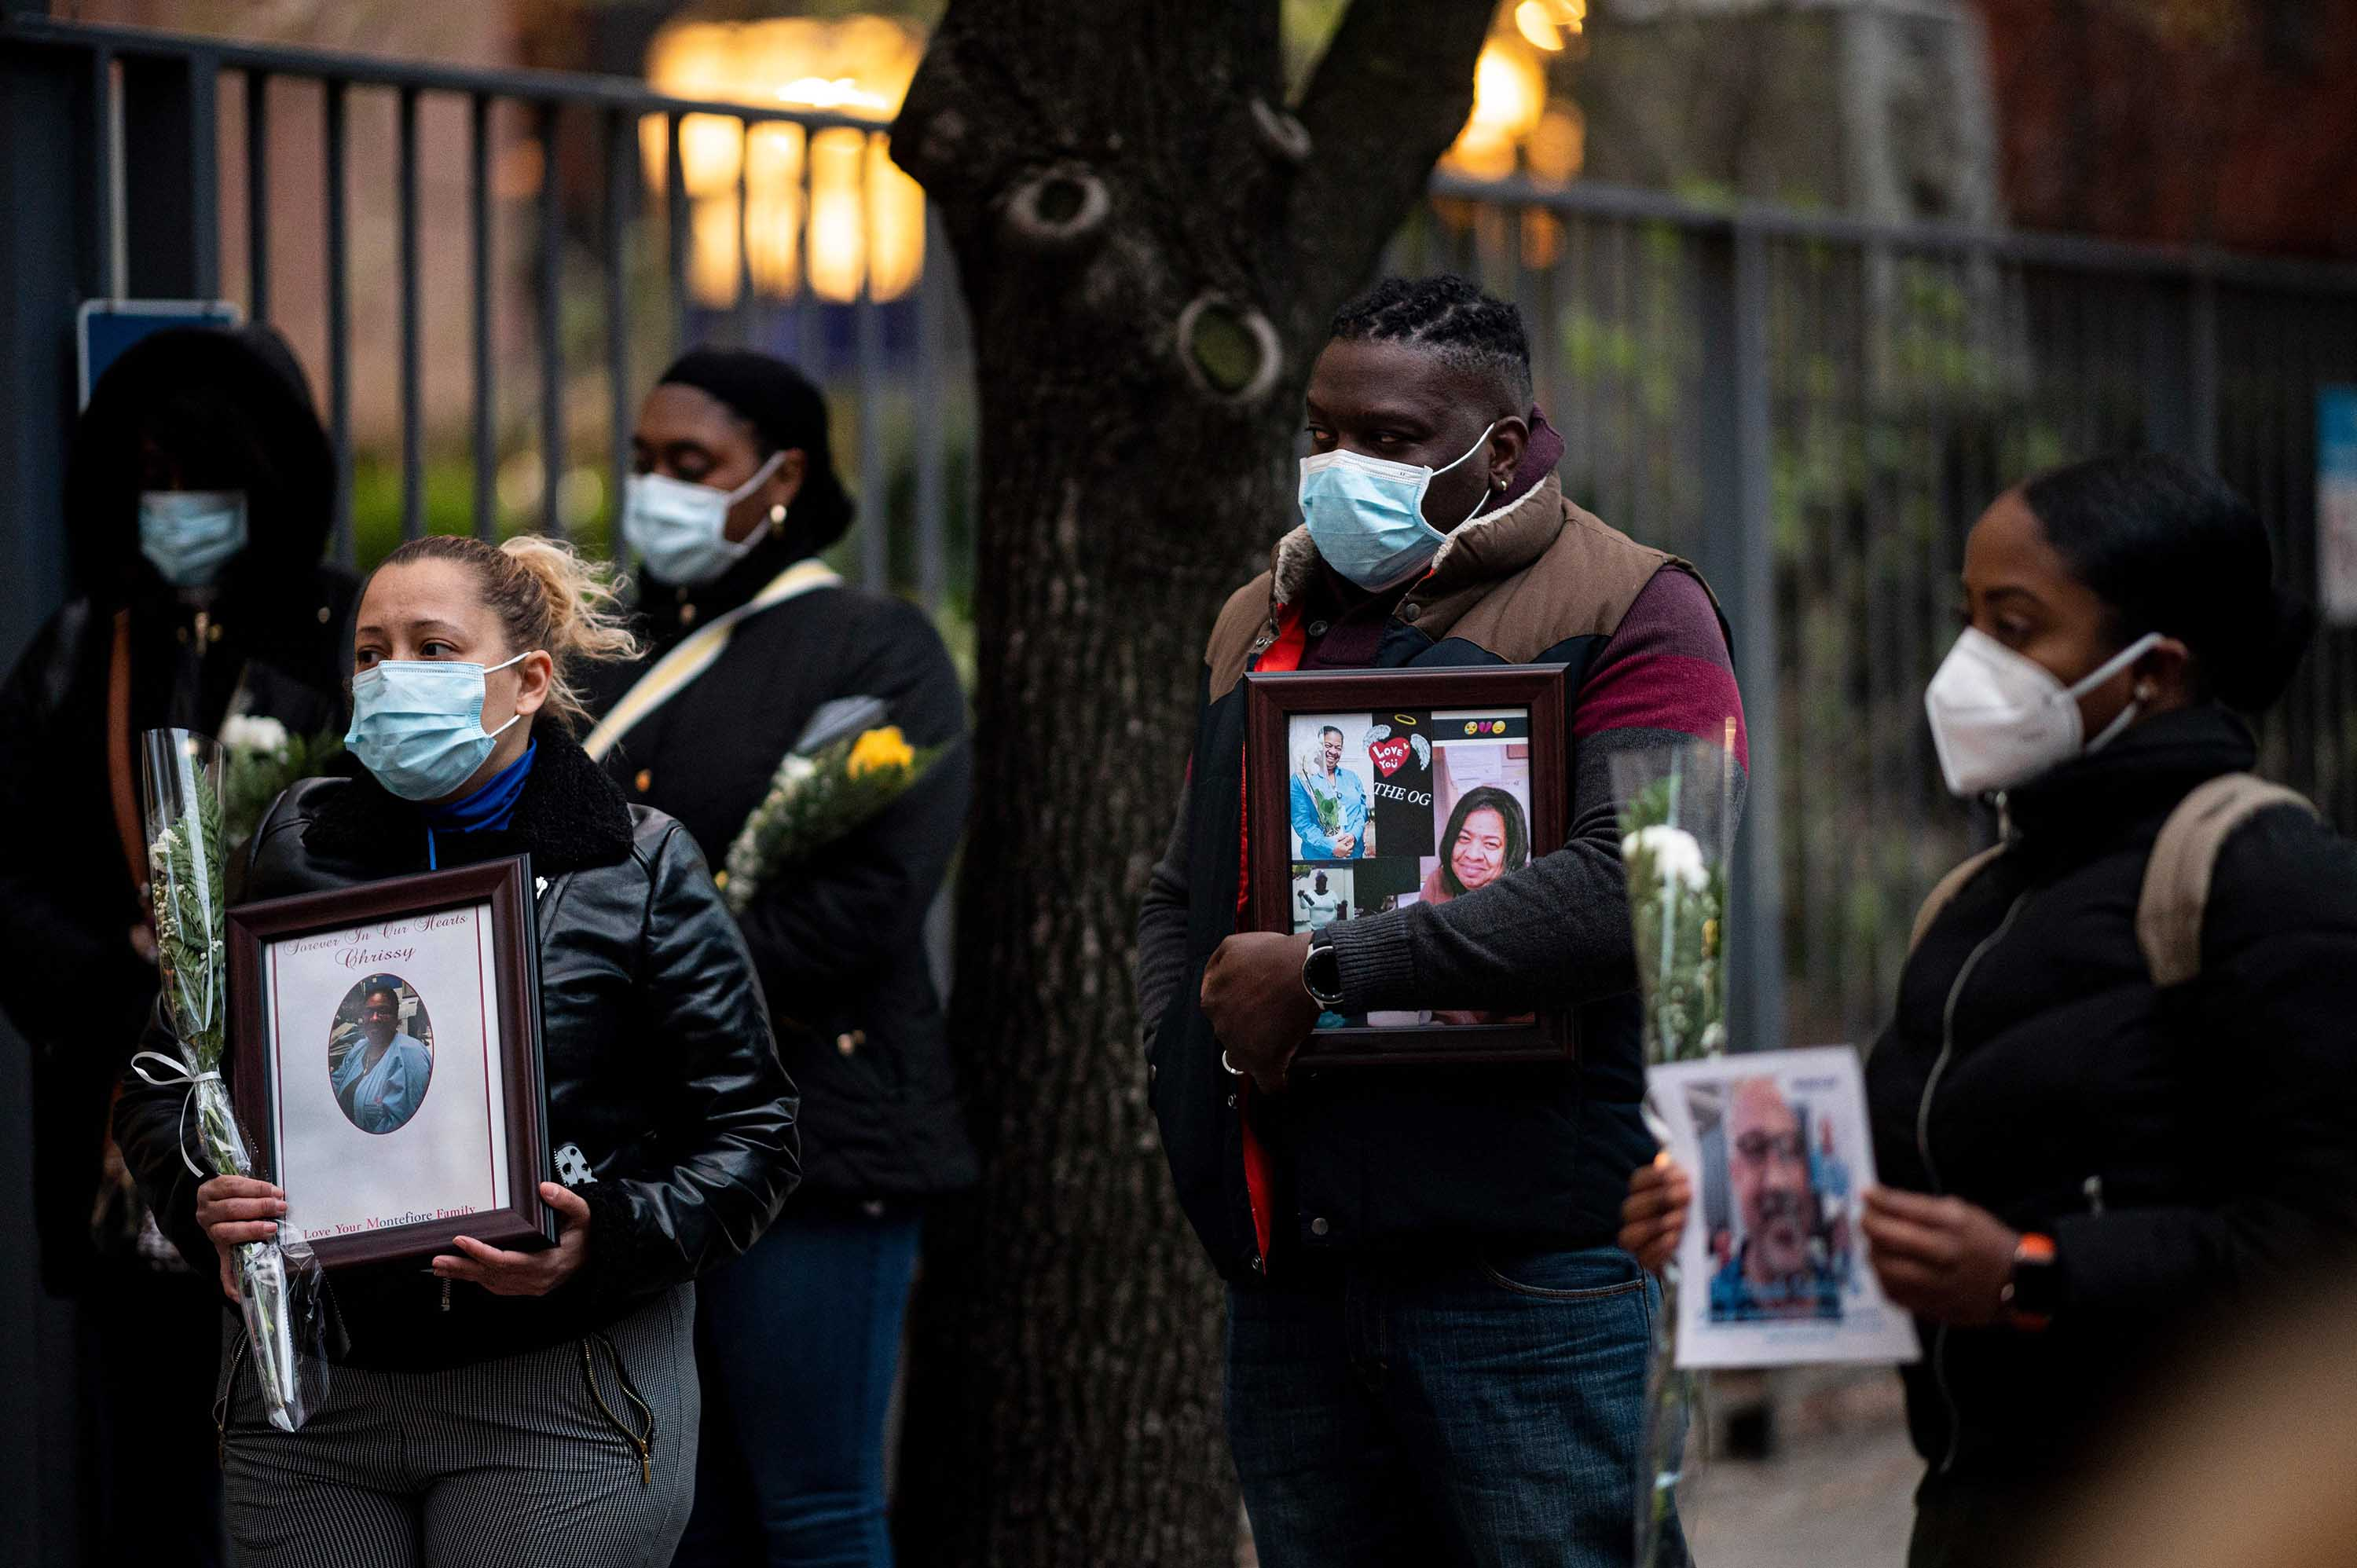 Healthcare workers mourn colleagues who have died during the coronavirus outbreak at a demonstration near Mount Sinai Hospital in New York City on April 10.